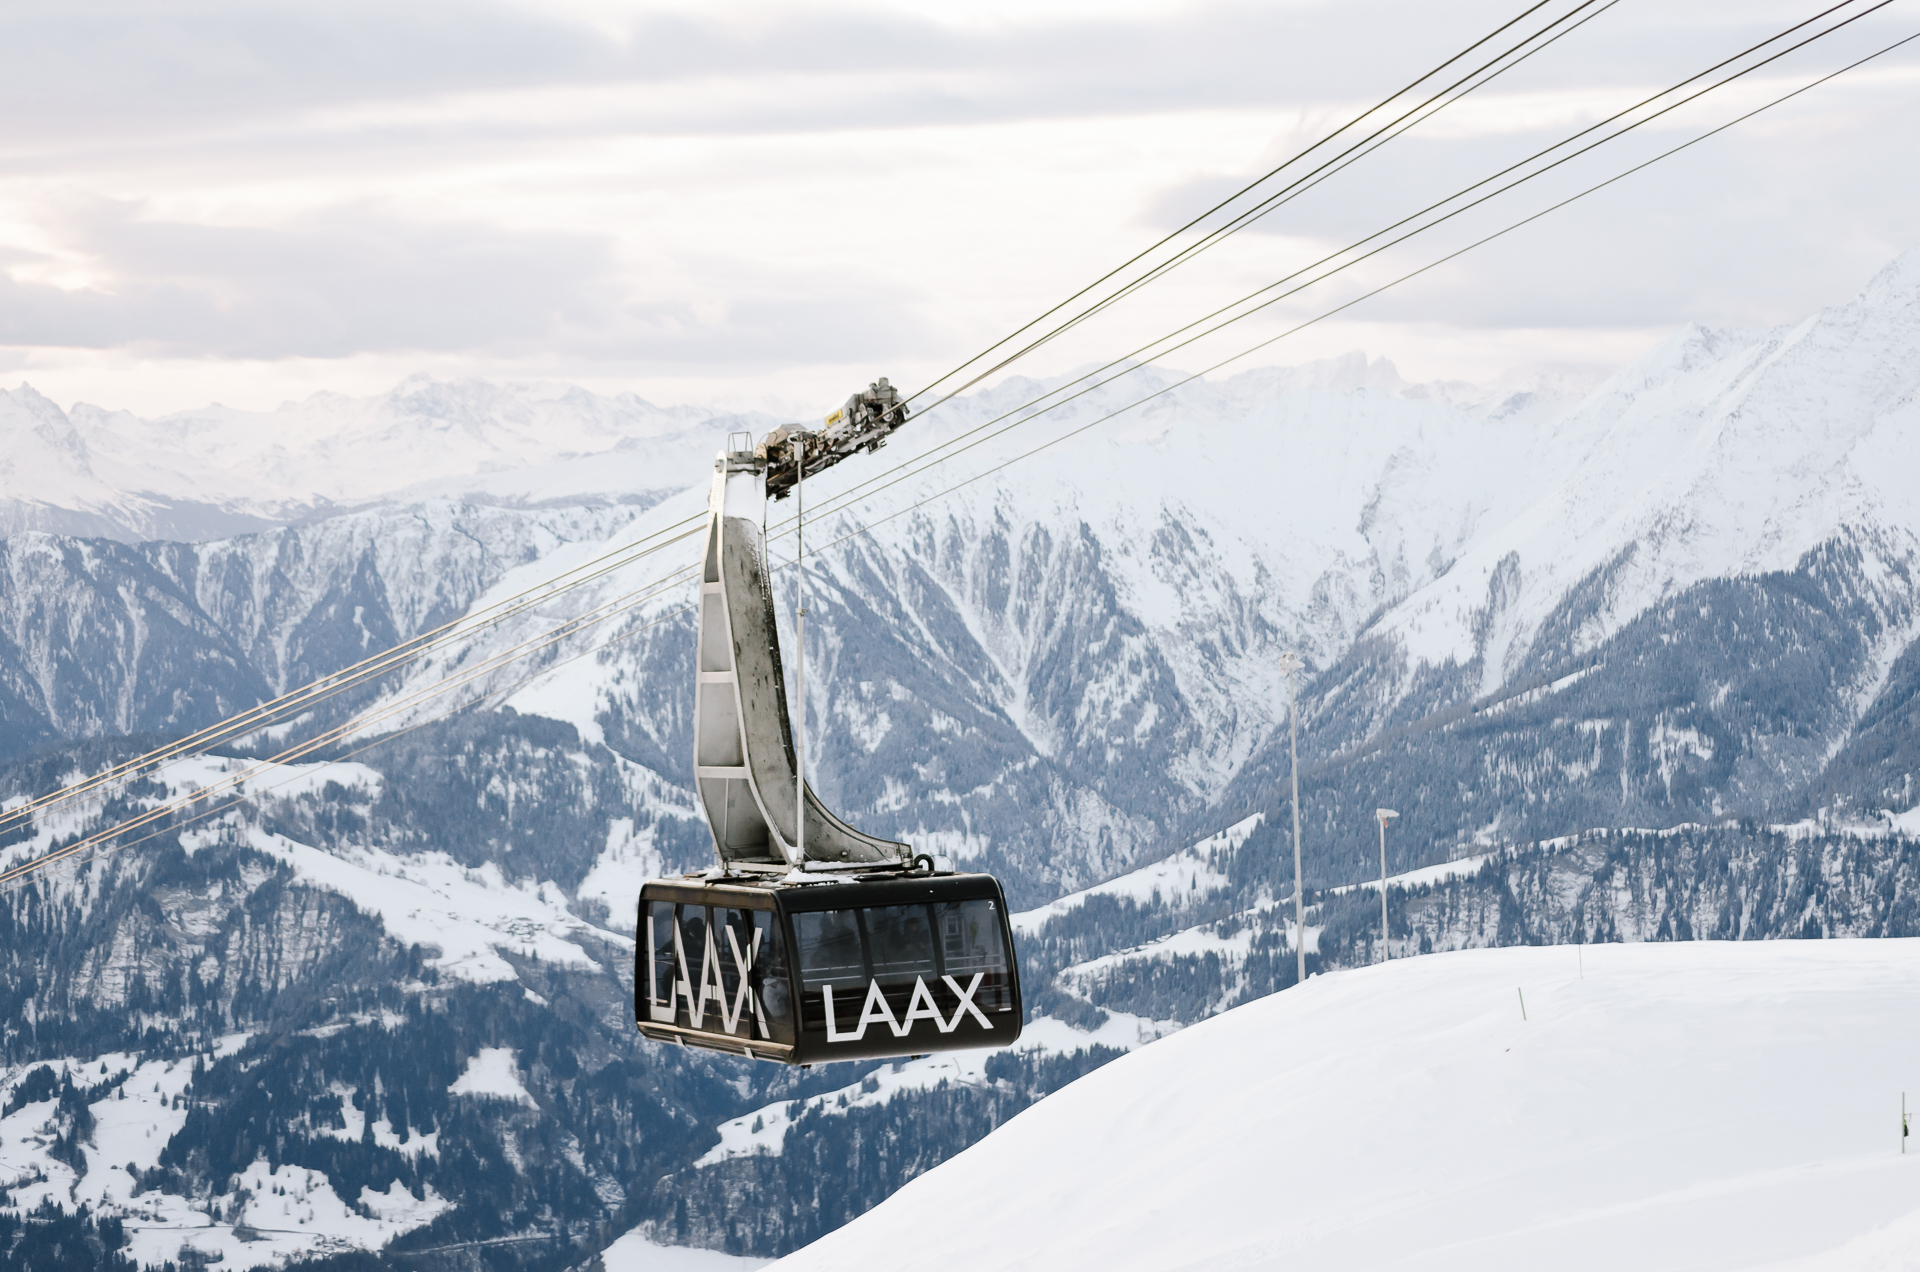 A Gondola in Laax, Graubunden, Switzerland